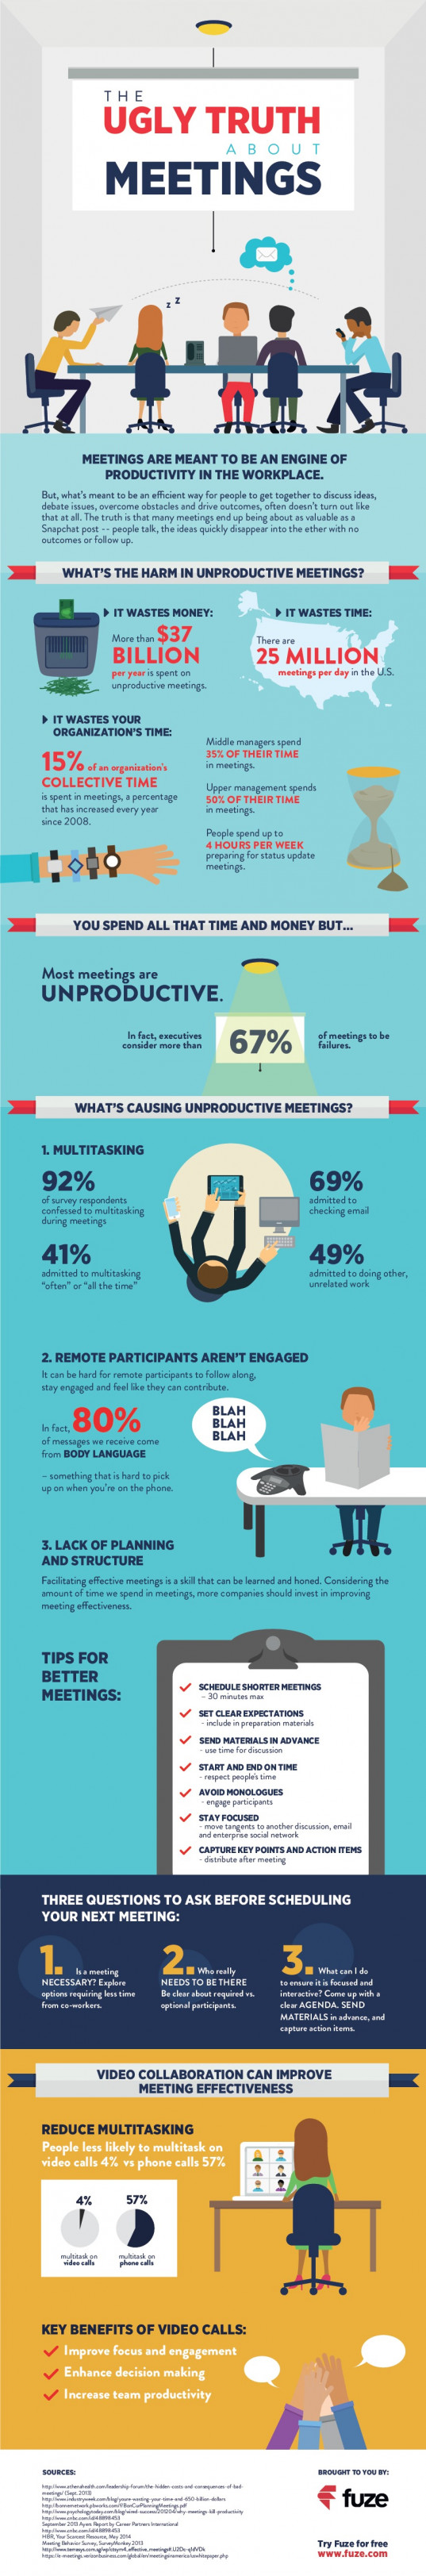 unproductive meetings infographic